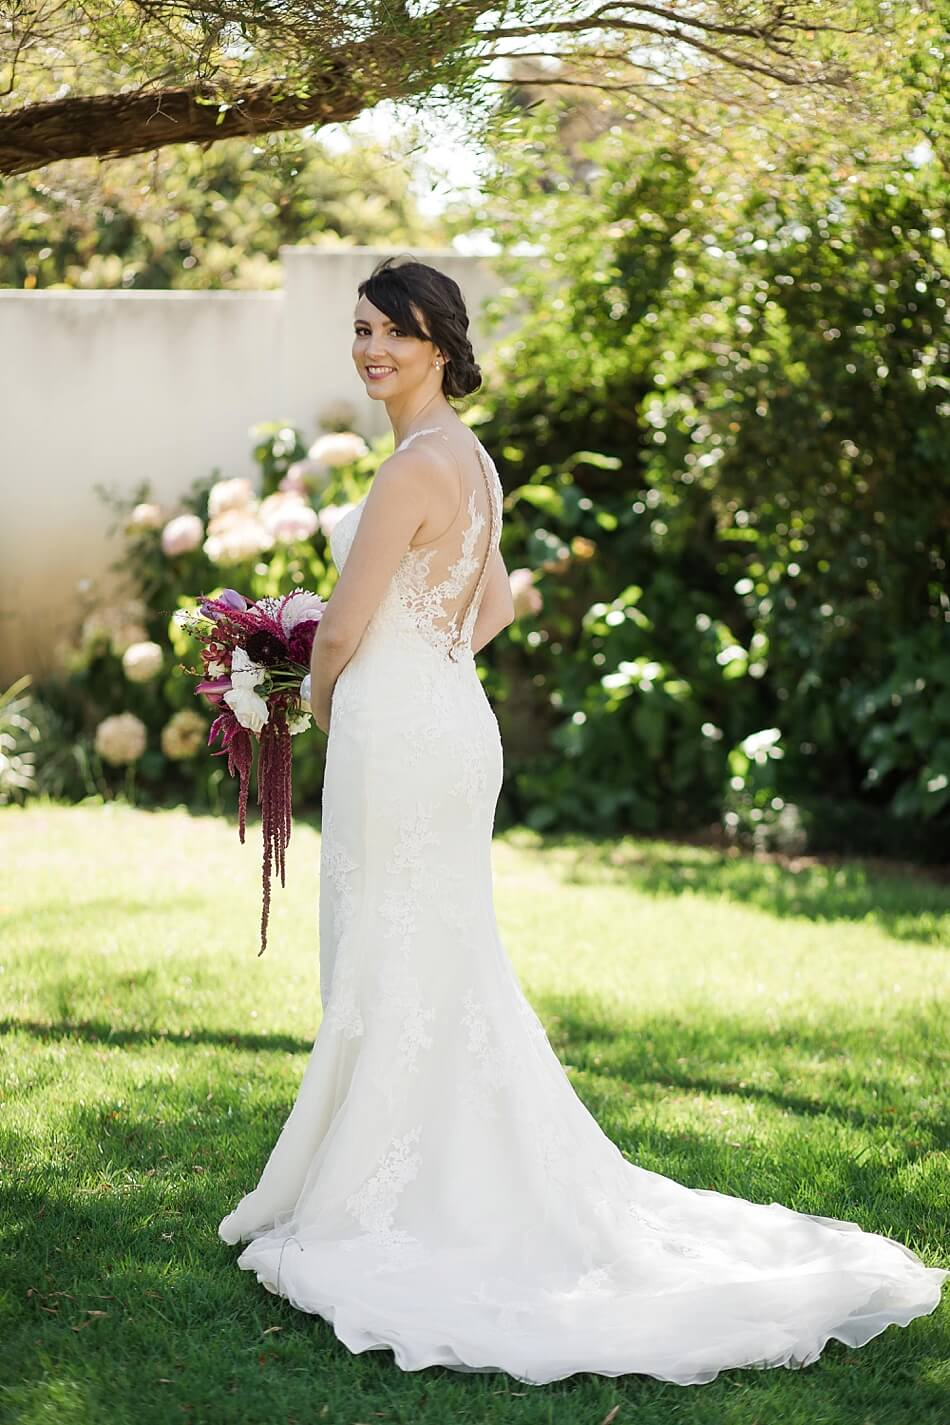 nikki-meyer_landtscap_stellenbosch_wedding_photographer_022